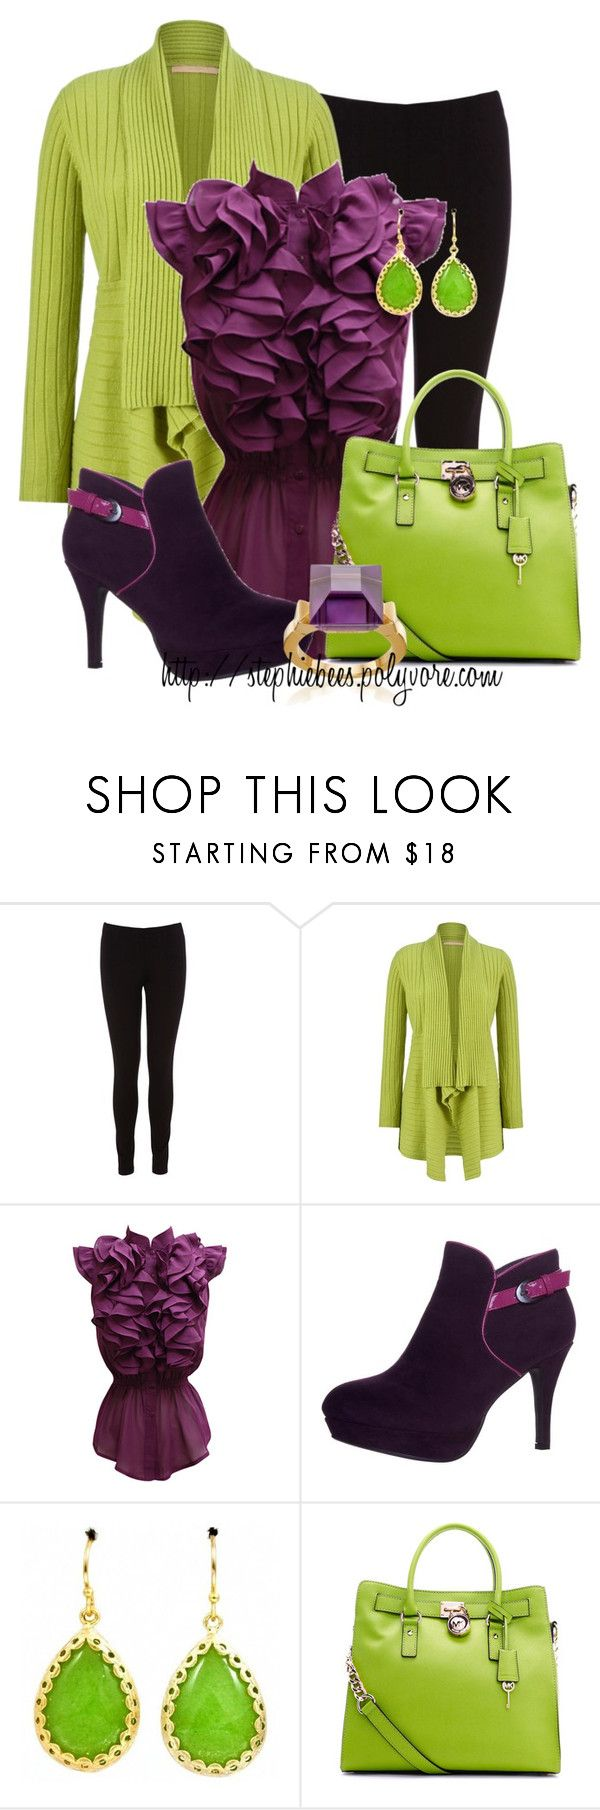 """John Lewis Cardigan"" by stephiebees ❤ liked on Polyvore featuring Oasis, John Lewis, even&odd, Fantasy Jewelry Box, MICHAEL Michael Kors and Gucci"